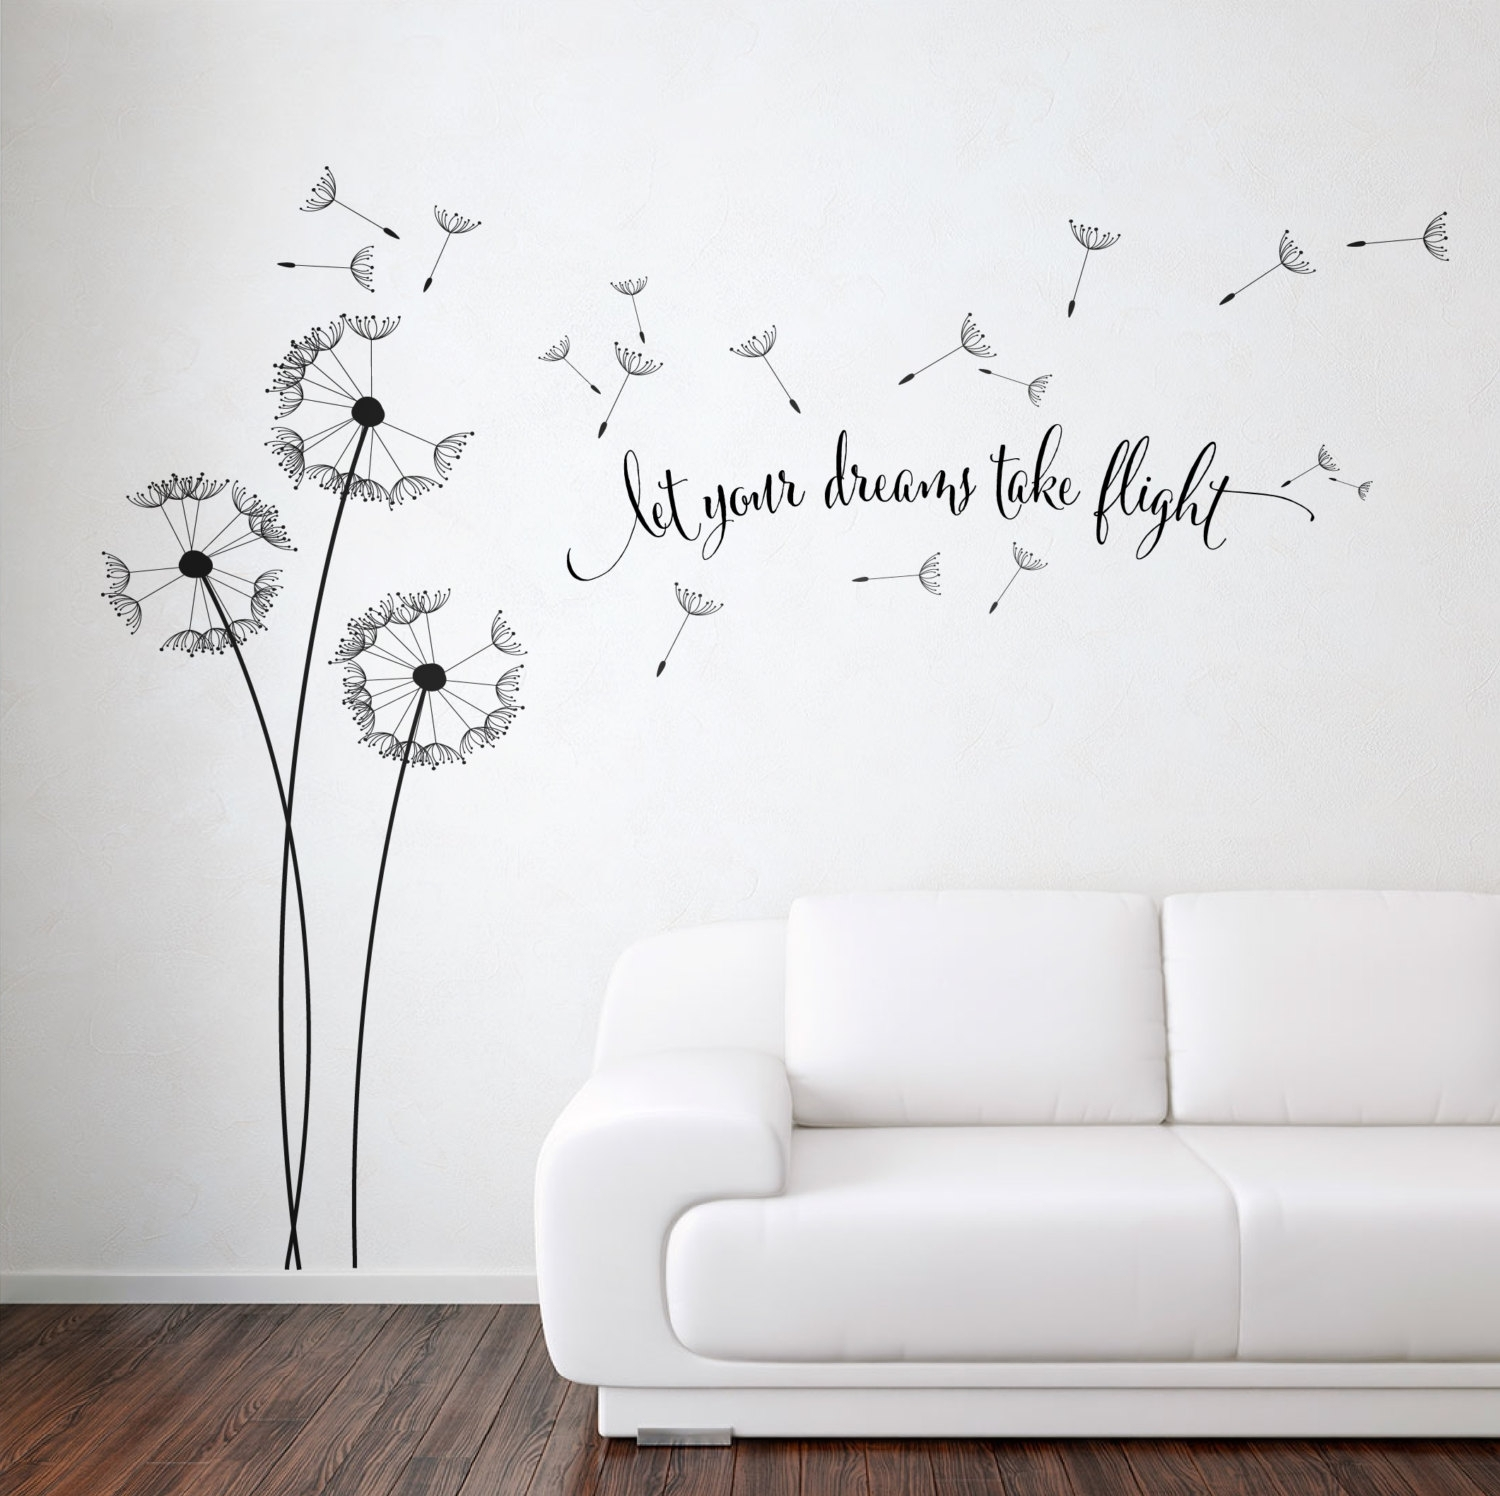 Dandelion Blowing With Quote Wall Sticker, Floral Sticker, Flower with Most Up-to-Date Dandelion Wall Art